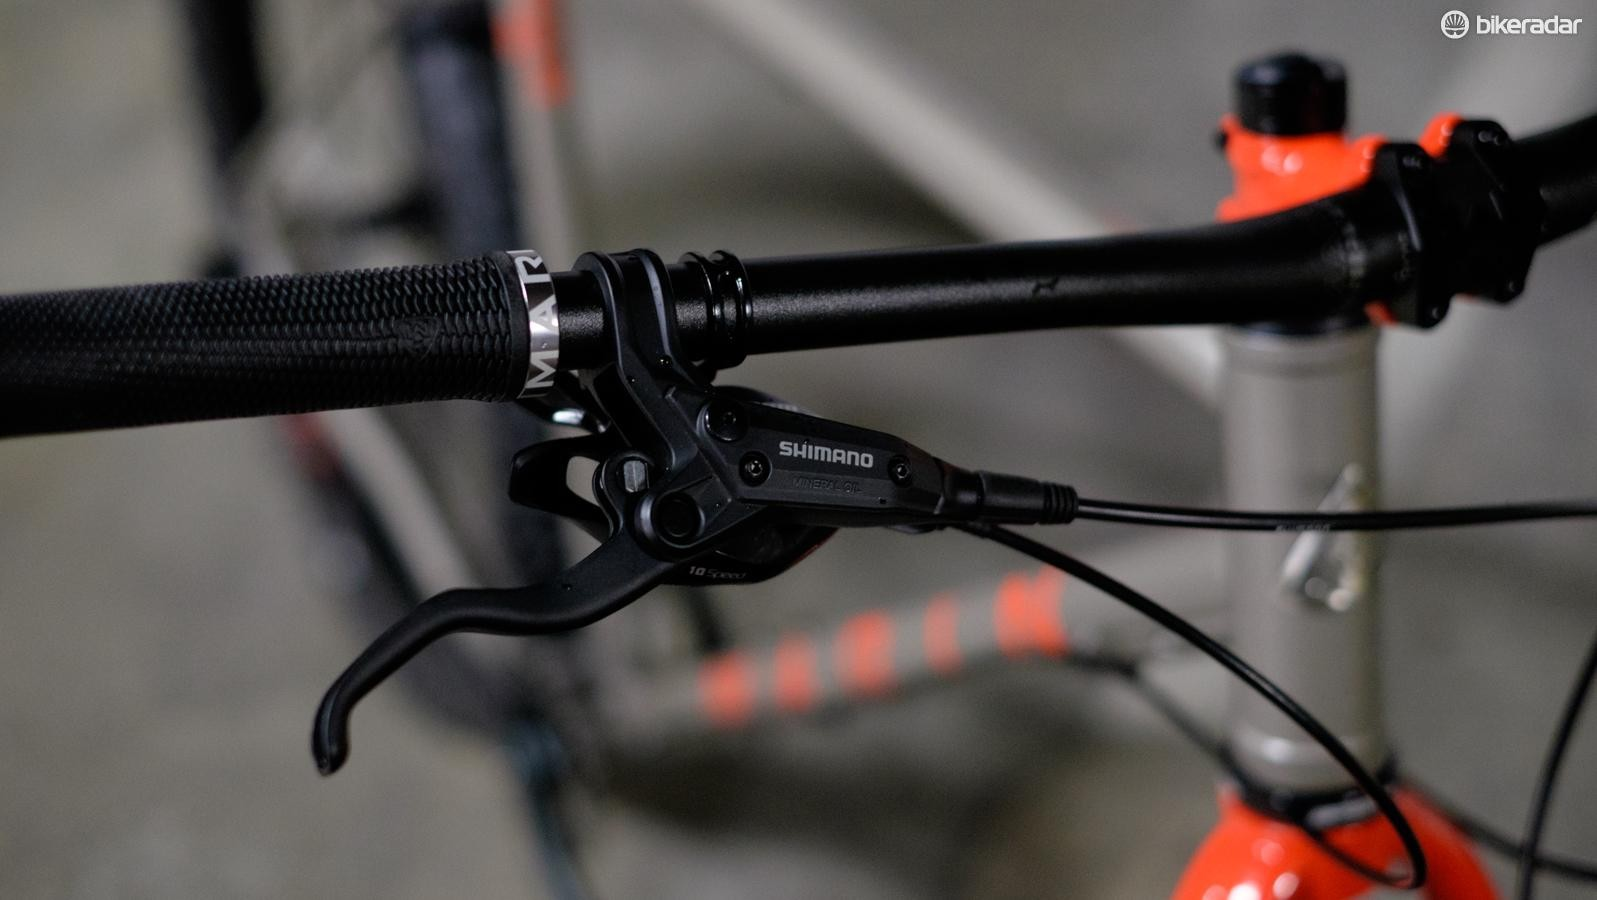 For 2017, the Pine Mountain has a 780mm handlebar and a 60mm stem